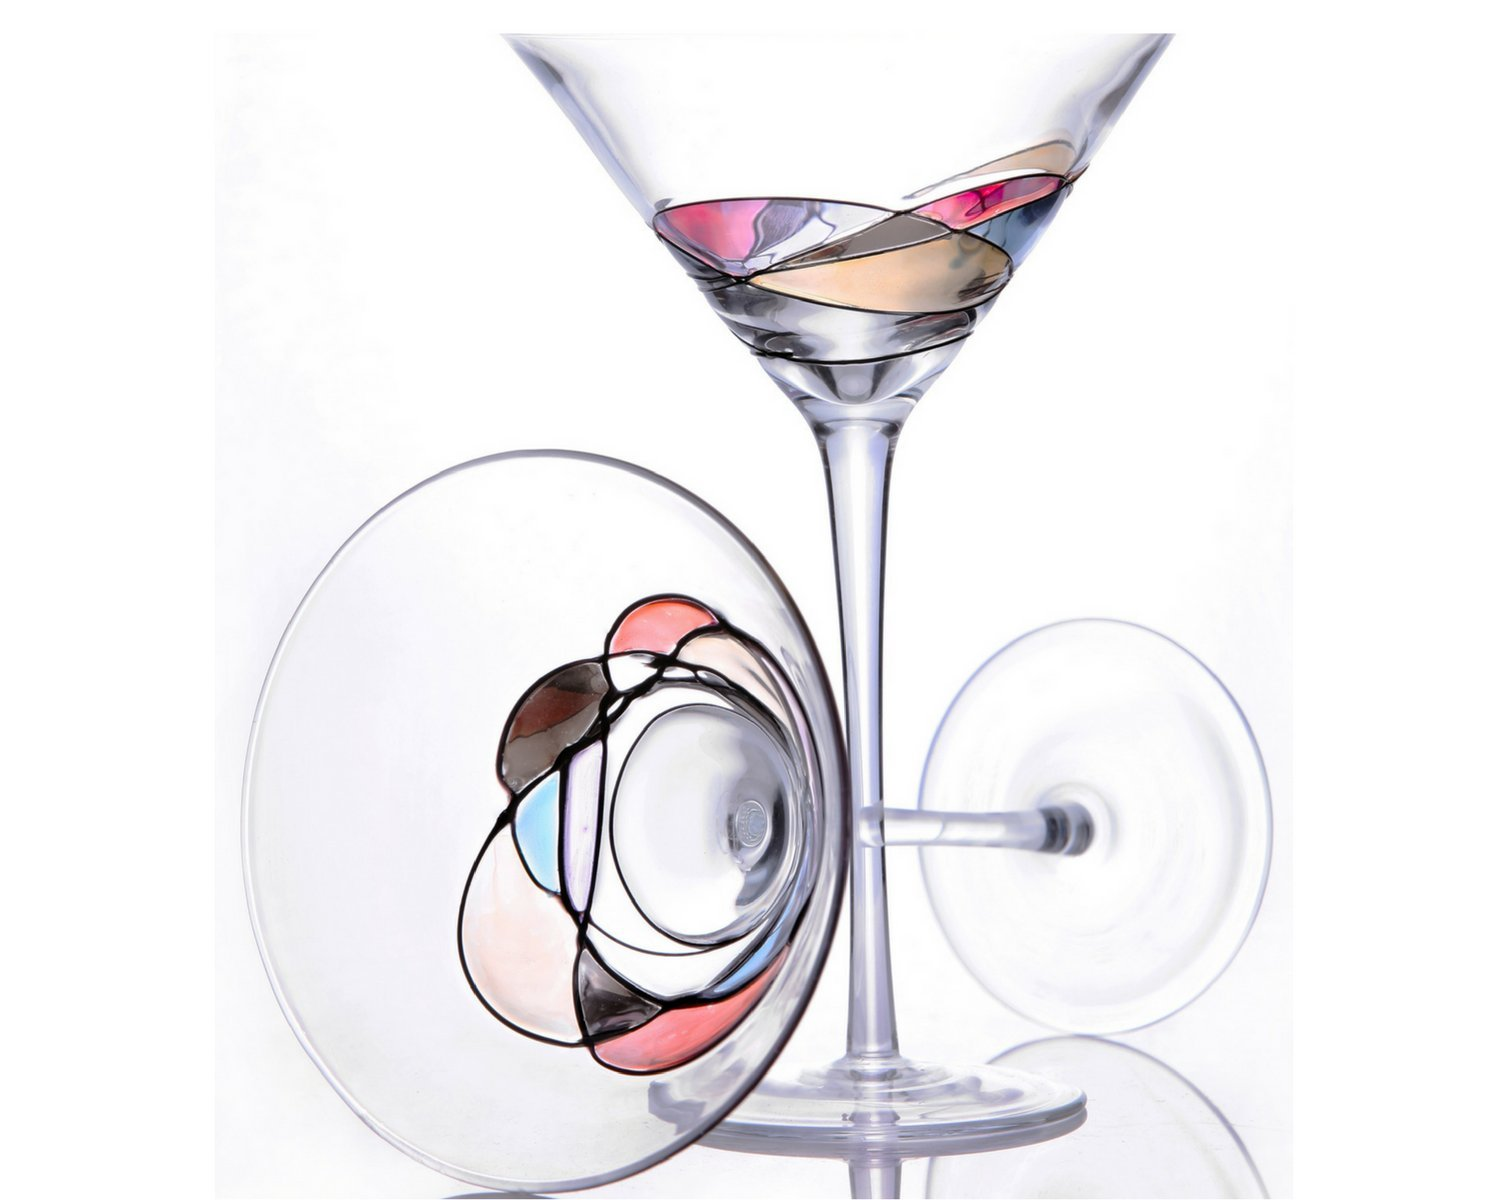 Handcrafted and Painted Martini Glasses by Sonoma Artisan, Set of 2. Ideal for Casual Entertaining, Unique Gift Idea, Romantic Night in, or Just Elevating Your Cocktail Enjoyment GreaterGoodz